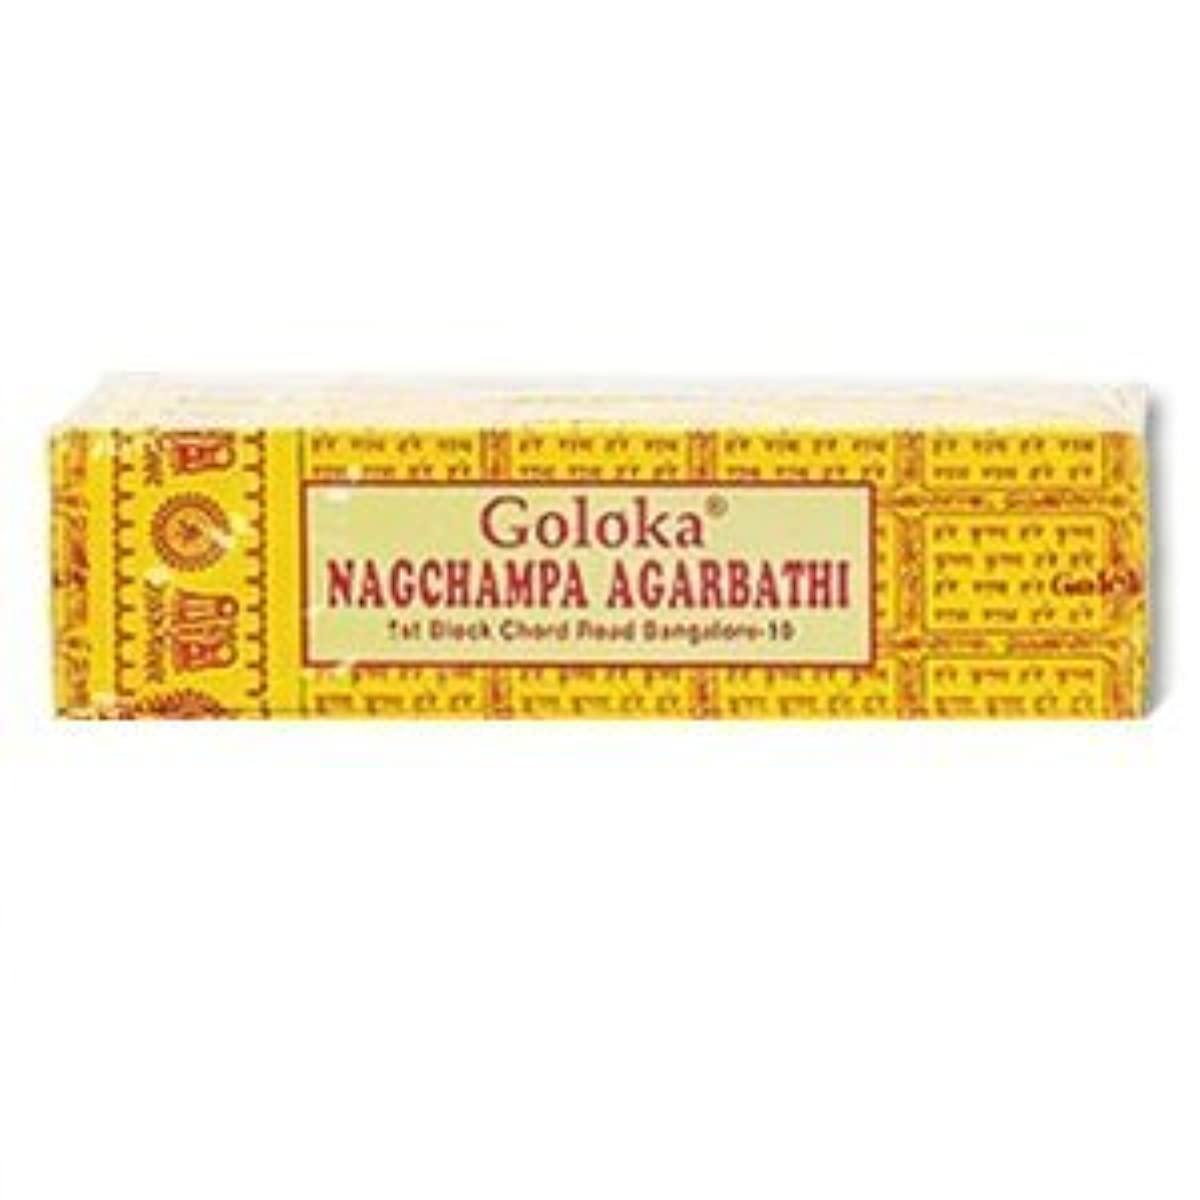 薄暗い恐怖好意的Goloka Nagchampa incense - 40 Grams per Pack by Goloka [並行輸入品]